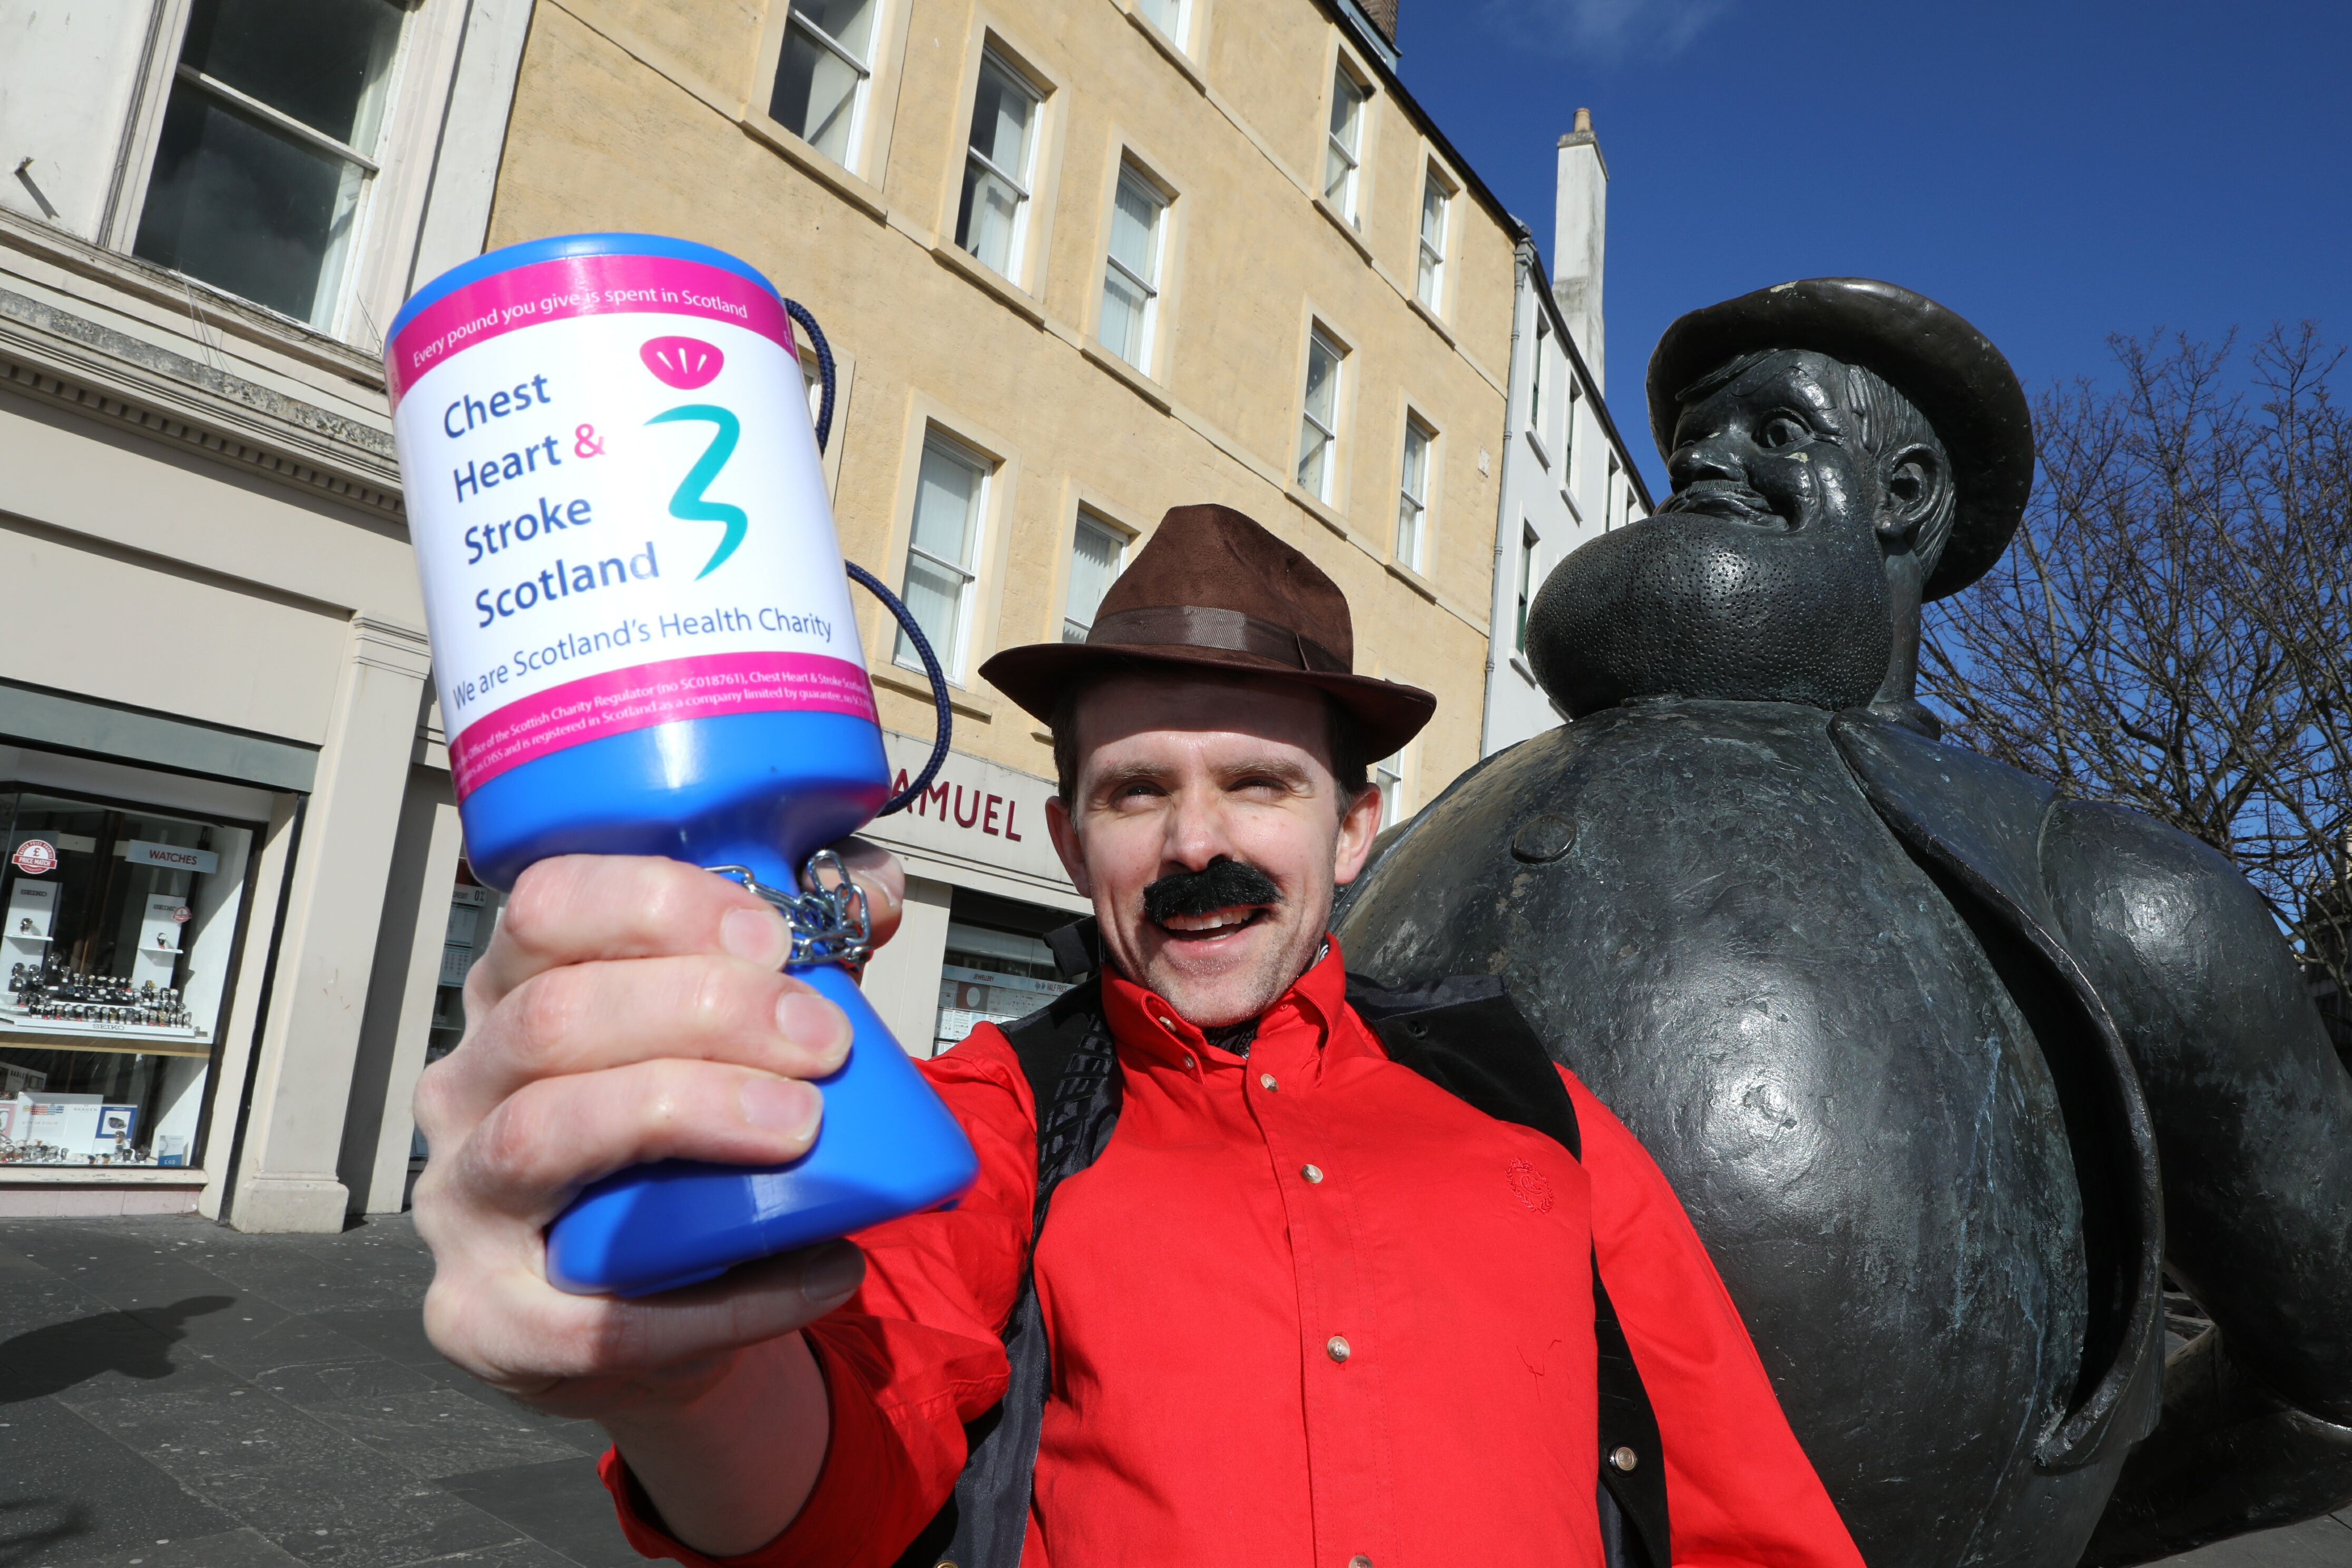 Lawrence Cowan, director of communications for Chest Heart & Stroke Scotland helps raise £30,000